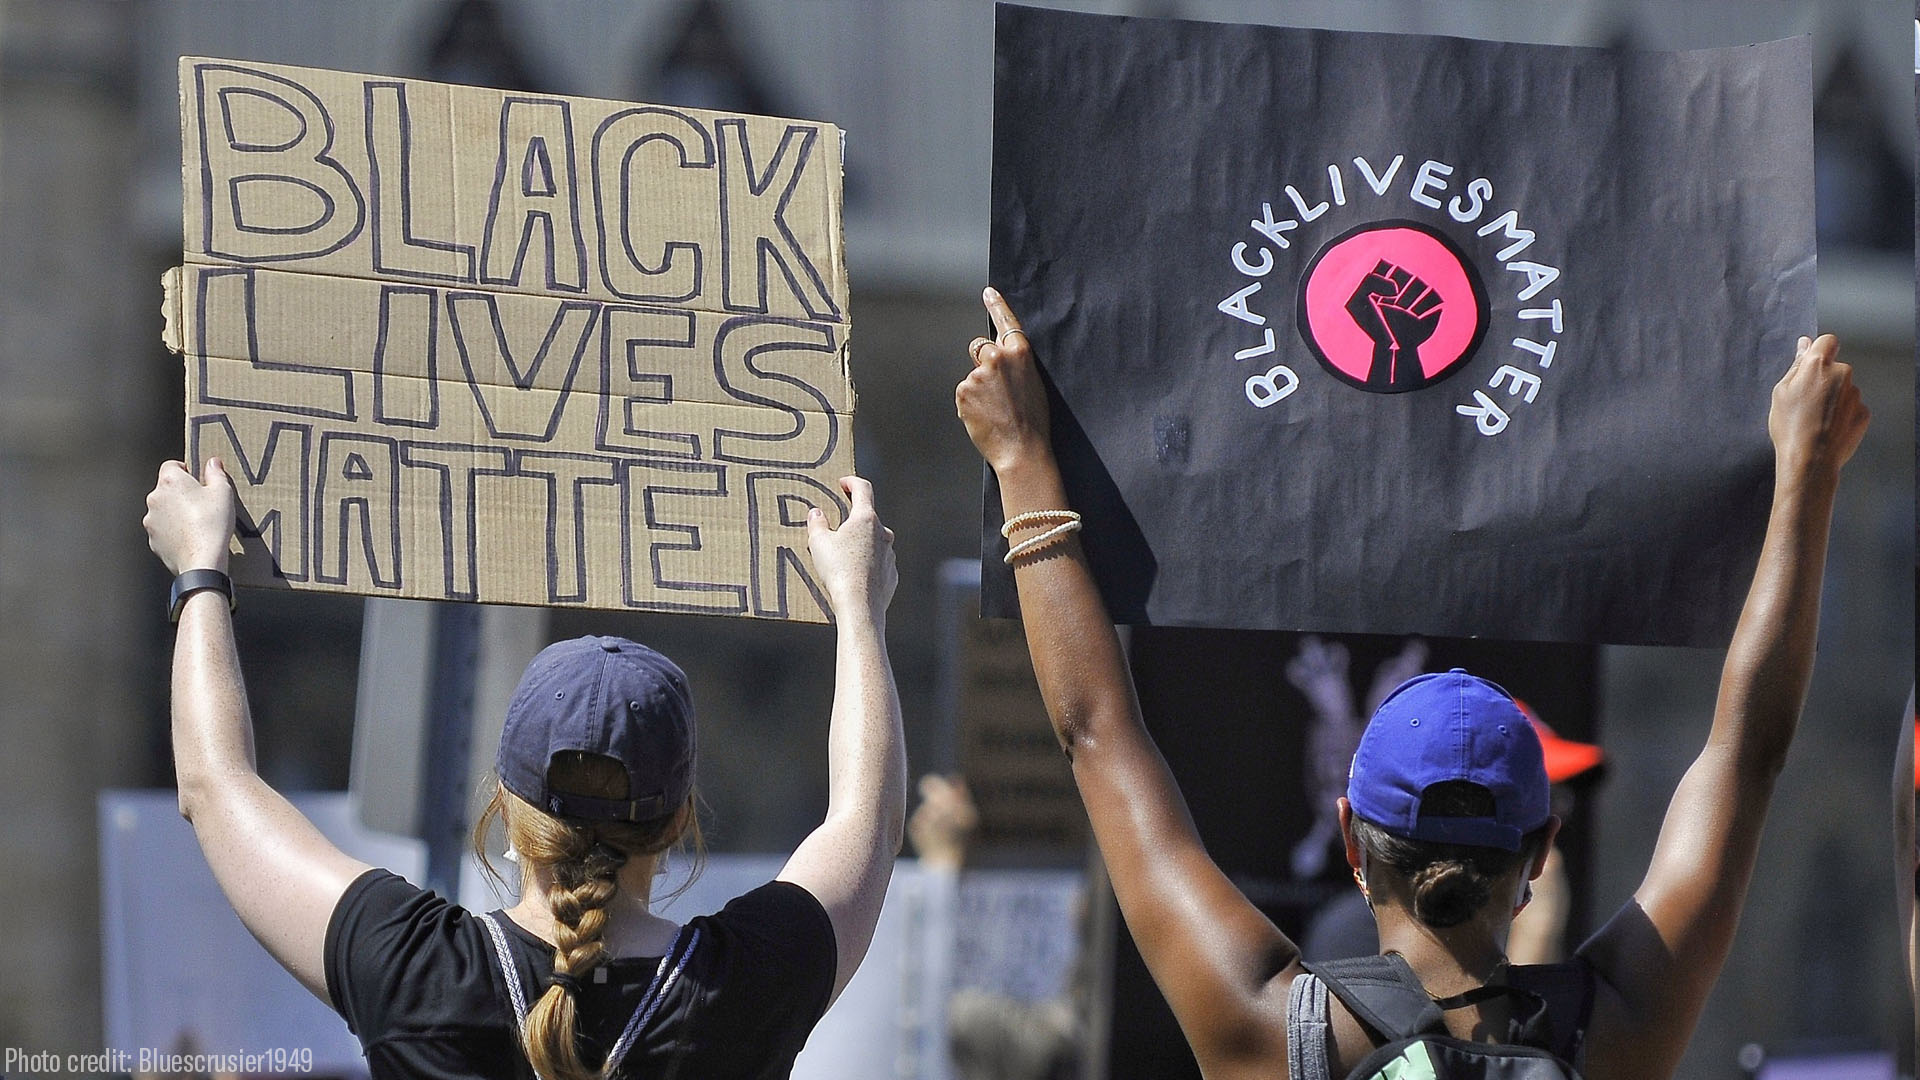 """Photo: Two people are pictured with their back facing the camera. They are outside rand raise handwritten signs that say """"Black Lives Matter."""""""